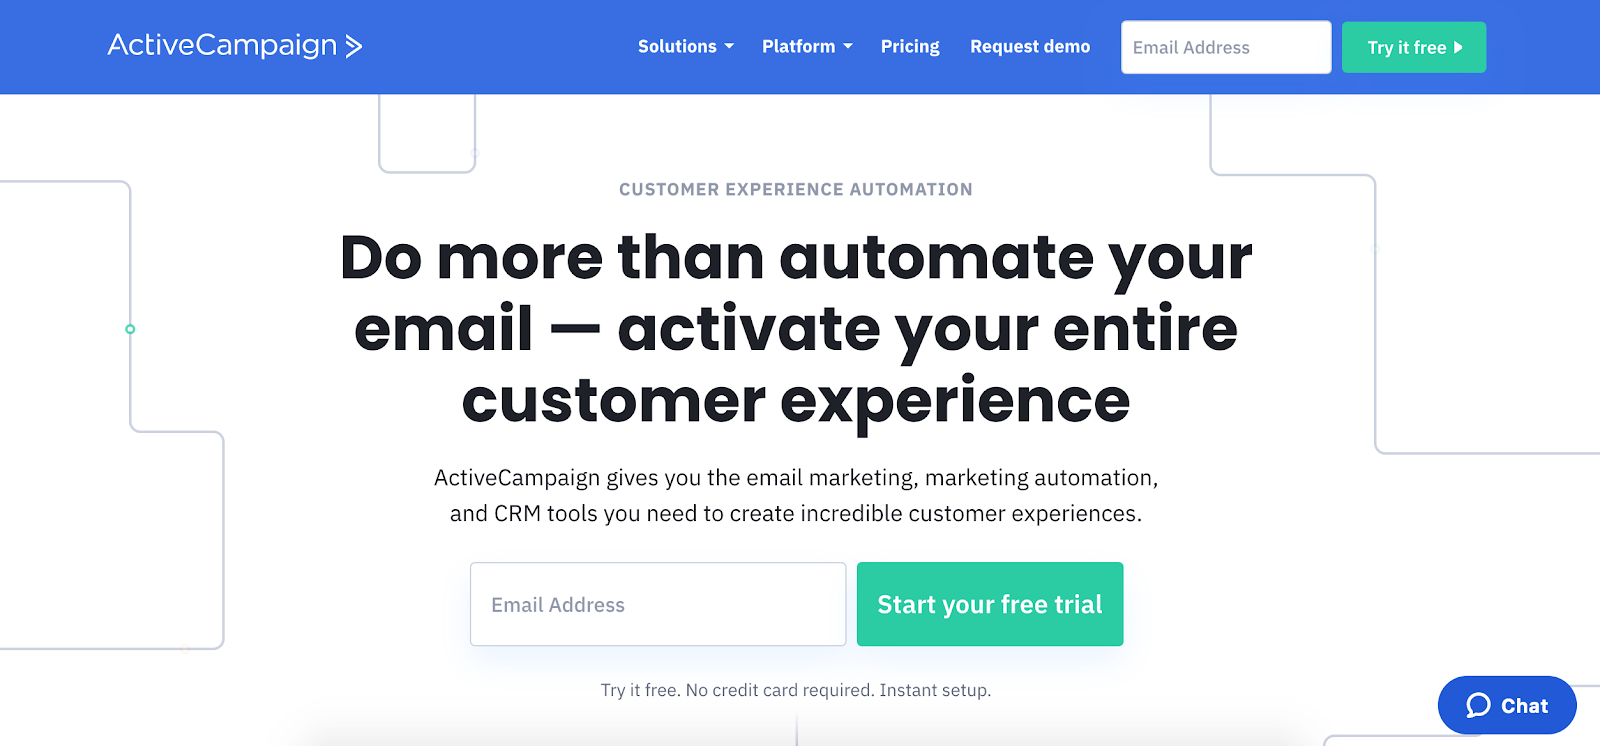 ActiveCampaign marketing automation tool homepage